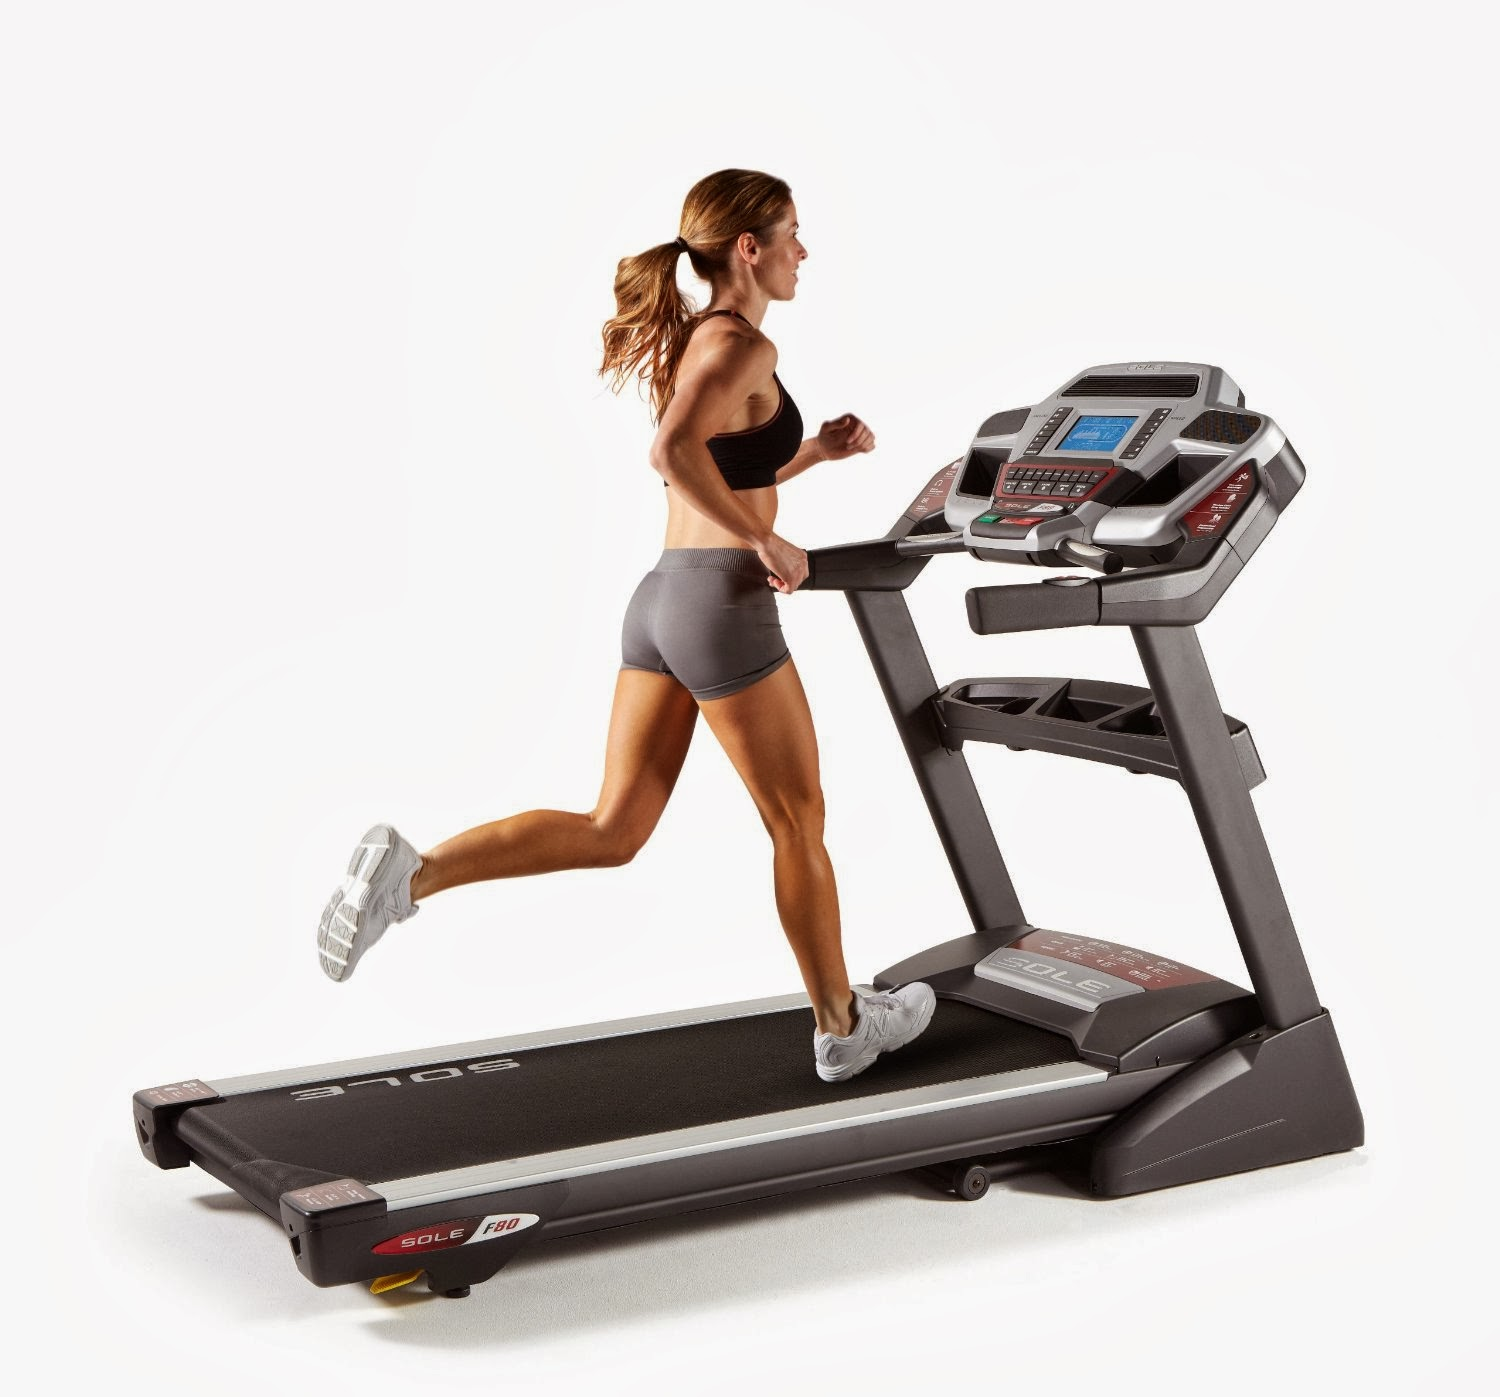 Sole Fitness F80 Treadmill versus Sole Fitness F63 Treadmill, compare & review features, buy at low prices